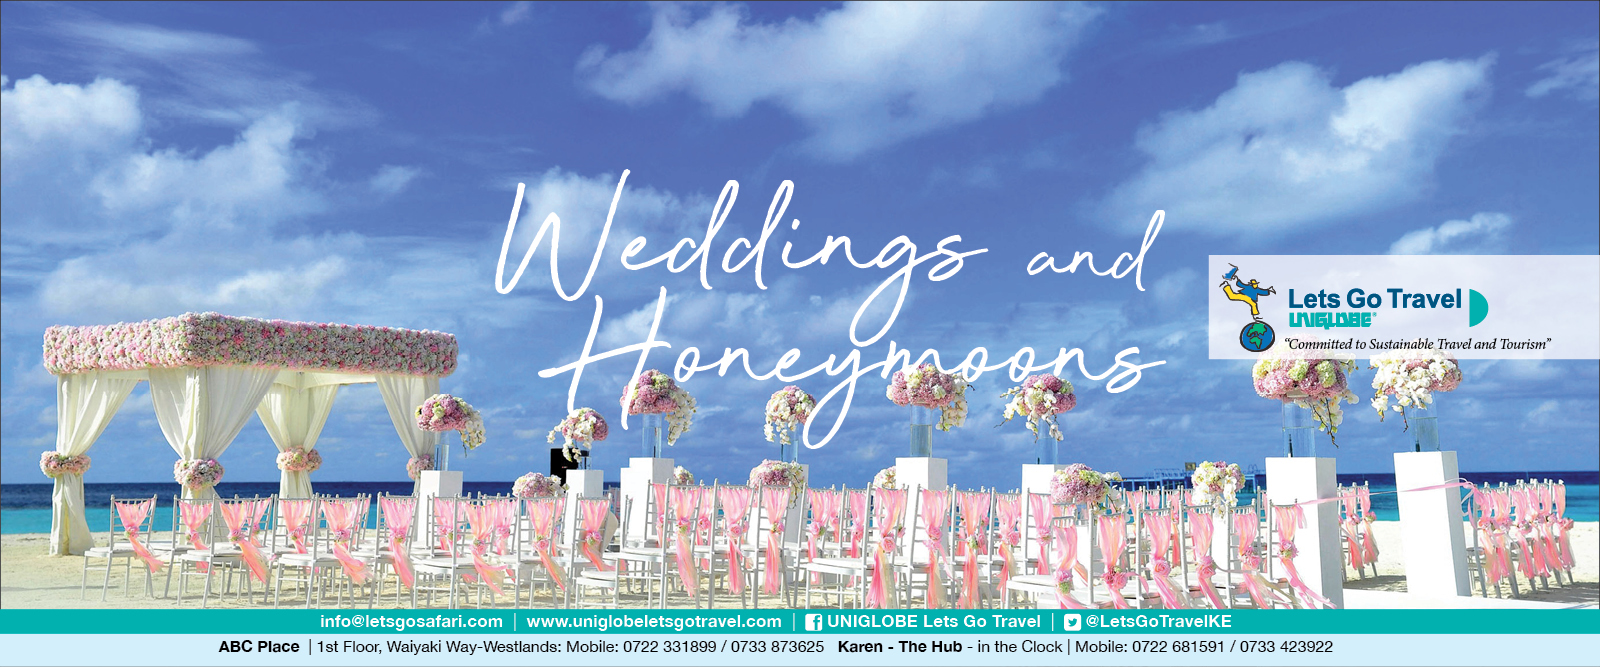 Lets Go Travel - your wedding and honeymoon specialist!